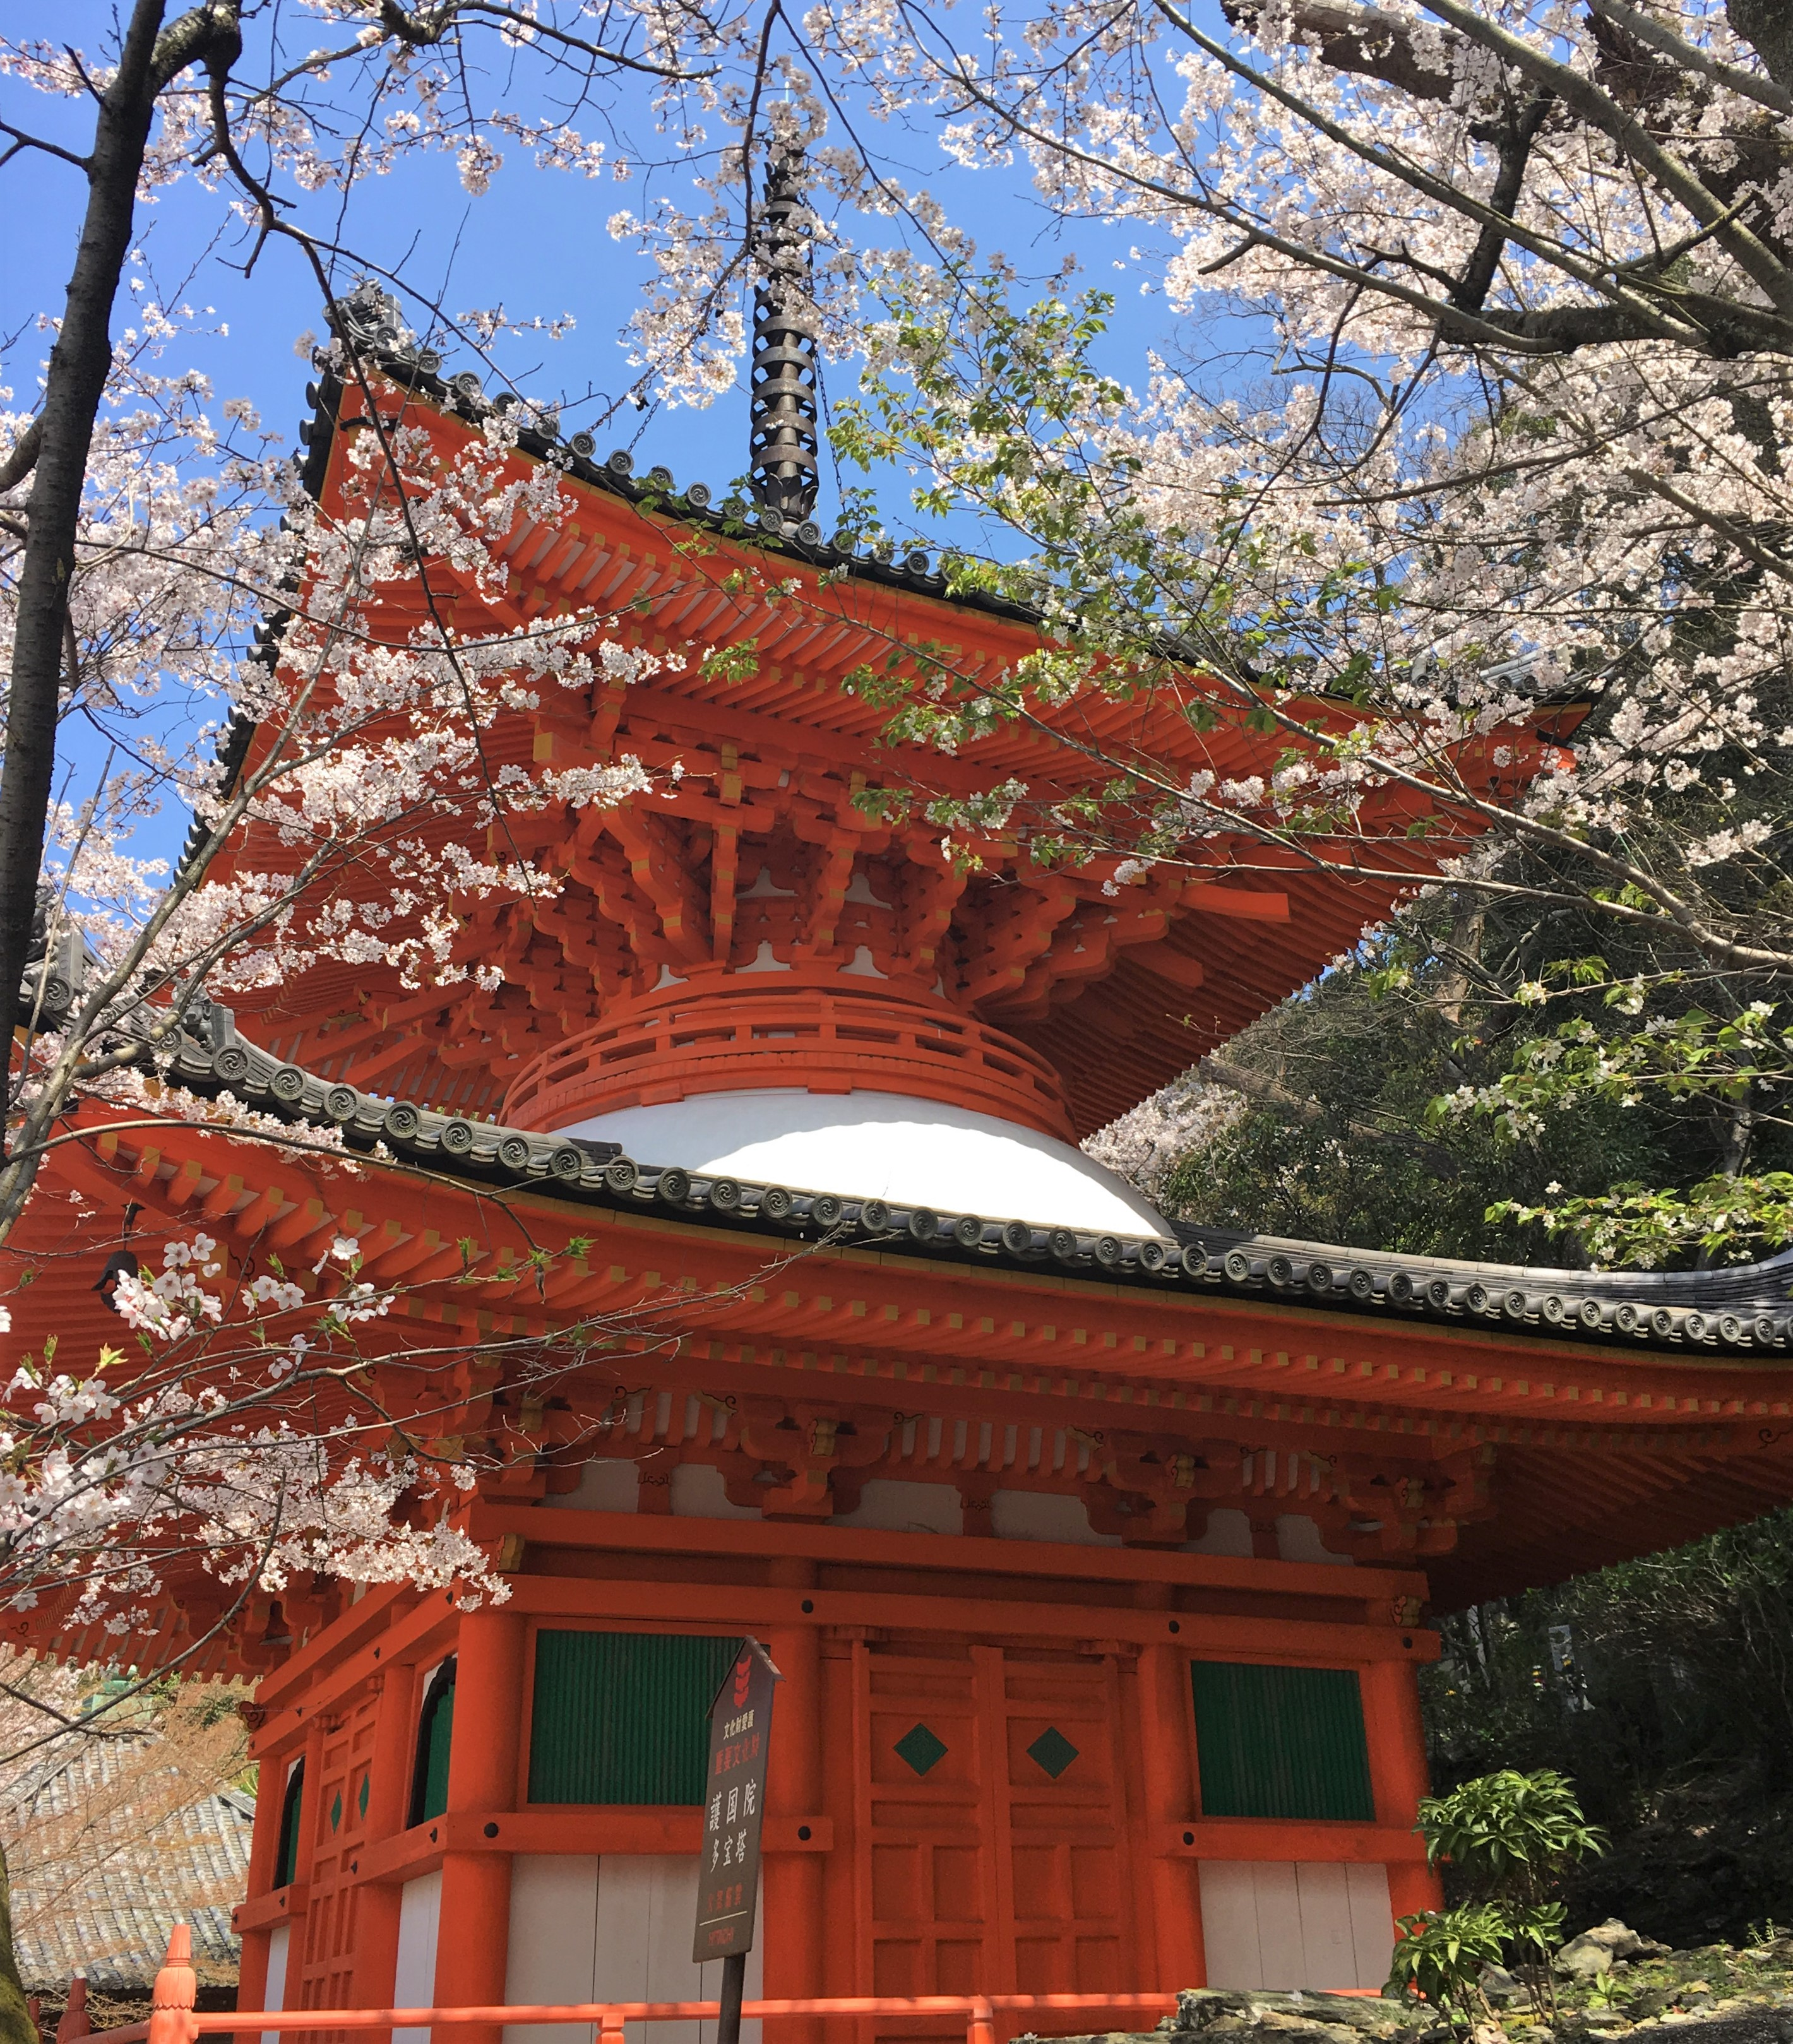 Kimii-dera temple tahoto surrounded by cherry blossoms